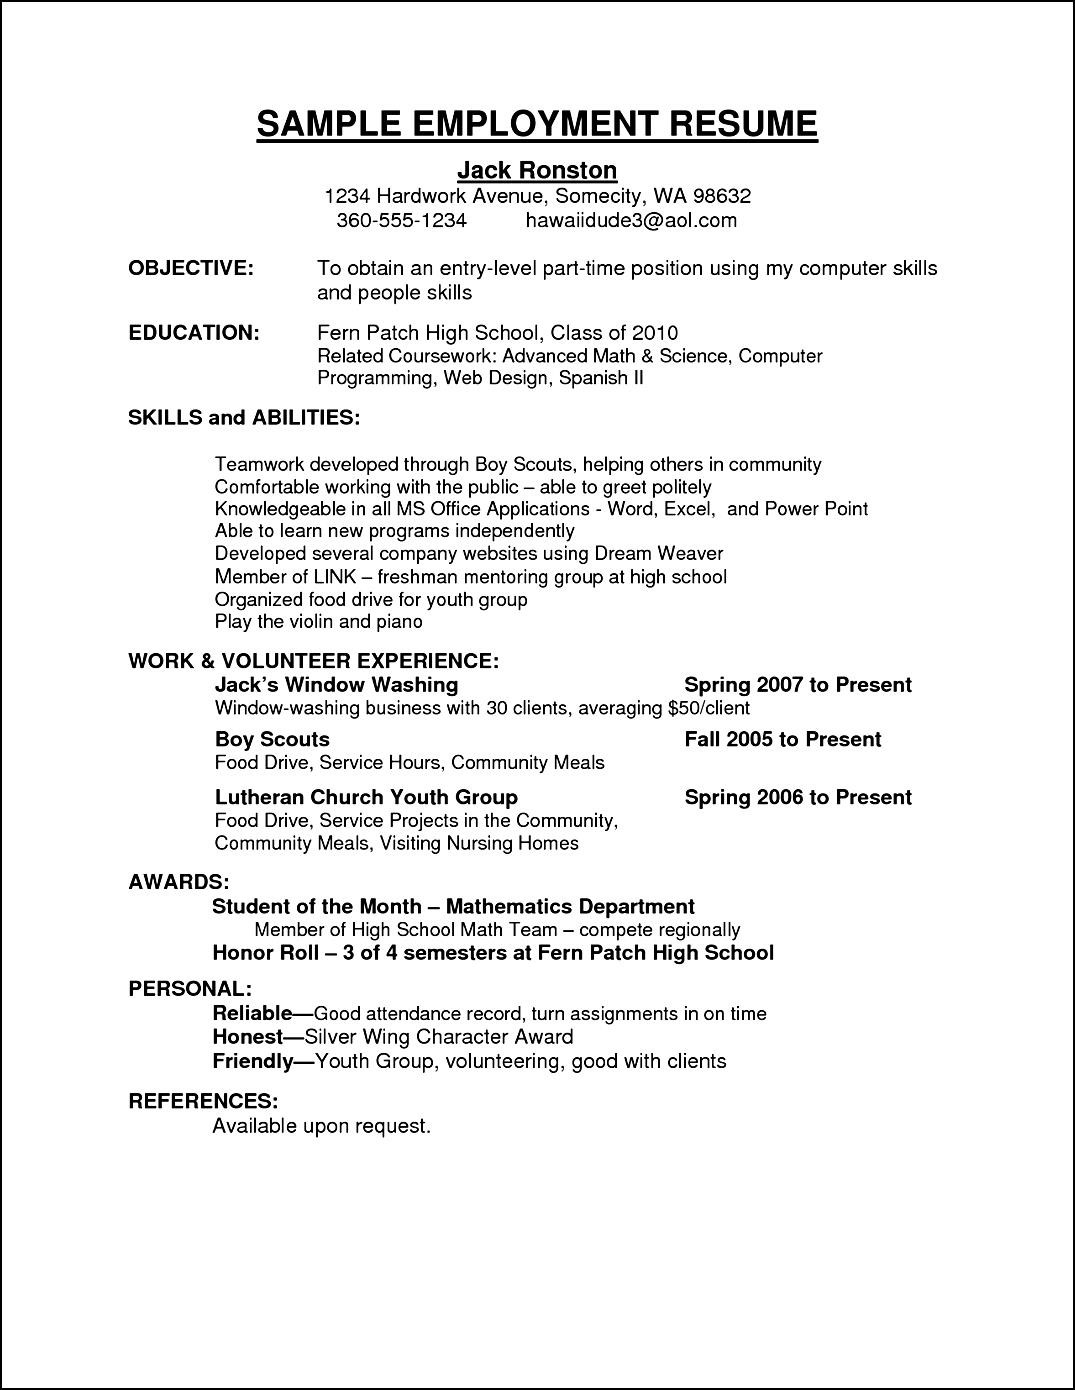 Format For A Resume For A Job Sample Curriculum Vitae For Employment Free Samples